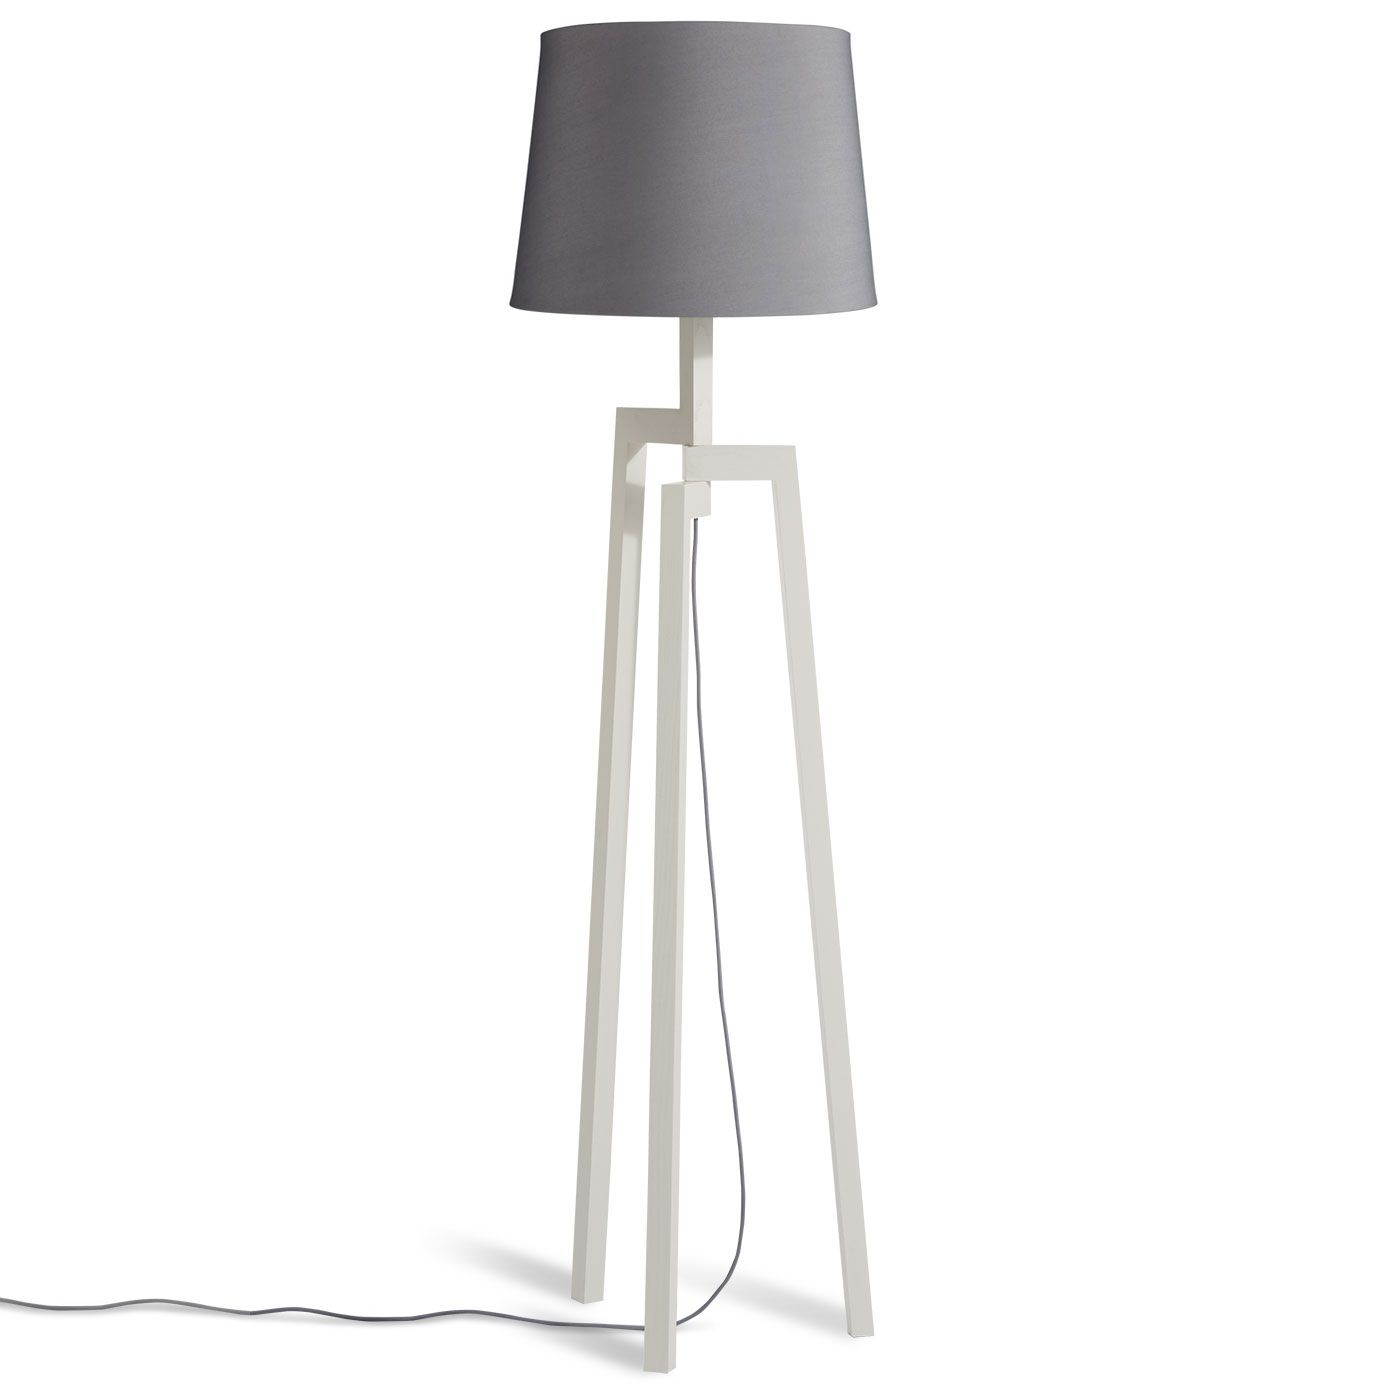 adler table n alt meurice category nickel floor jonathan lighting lamp image floortable by modern lamps